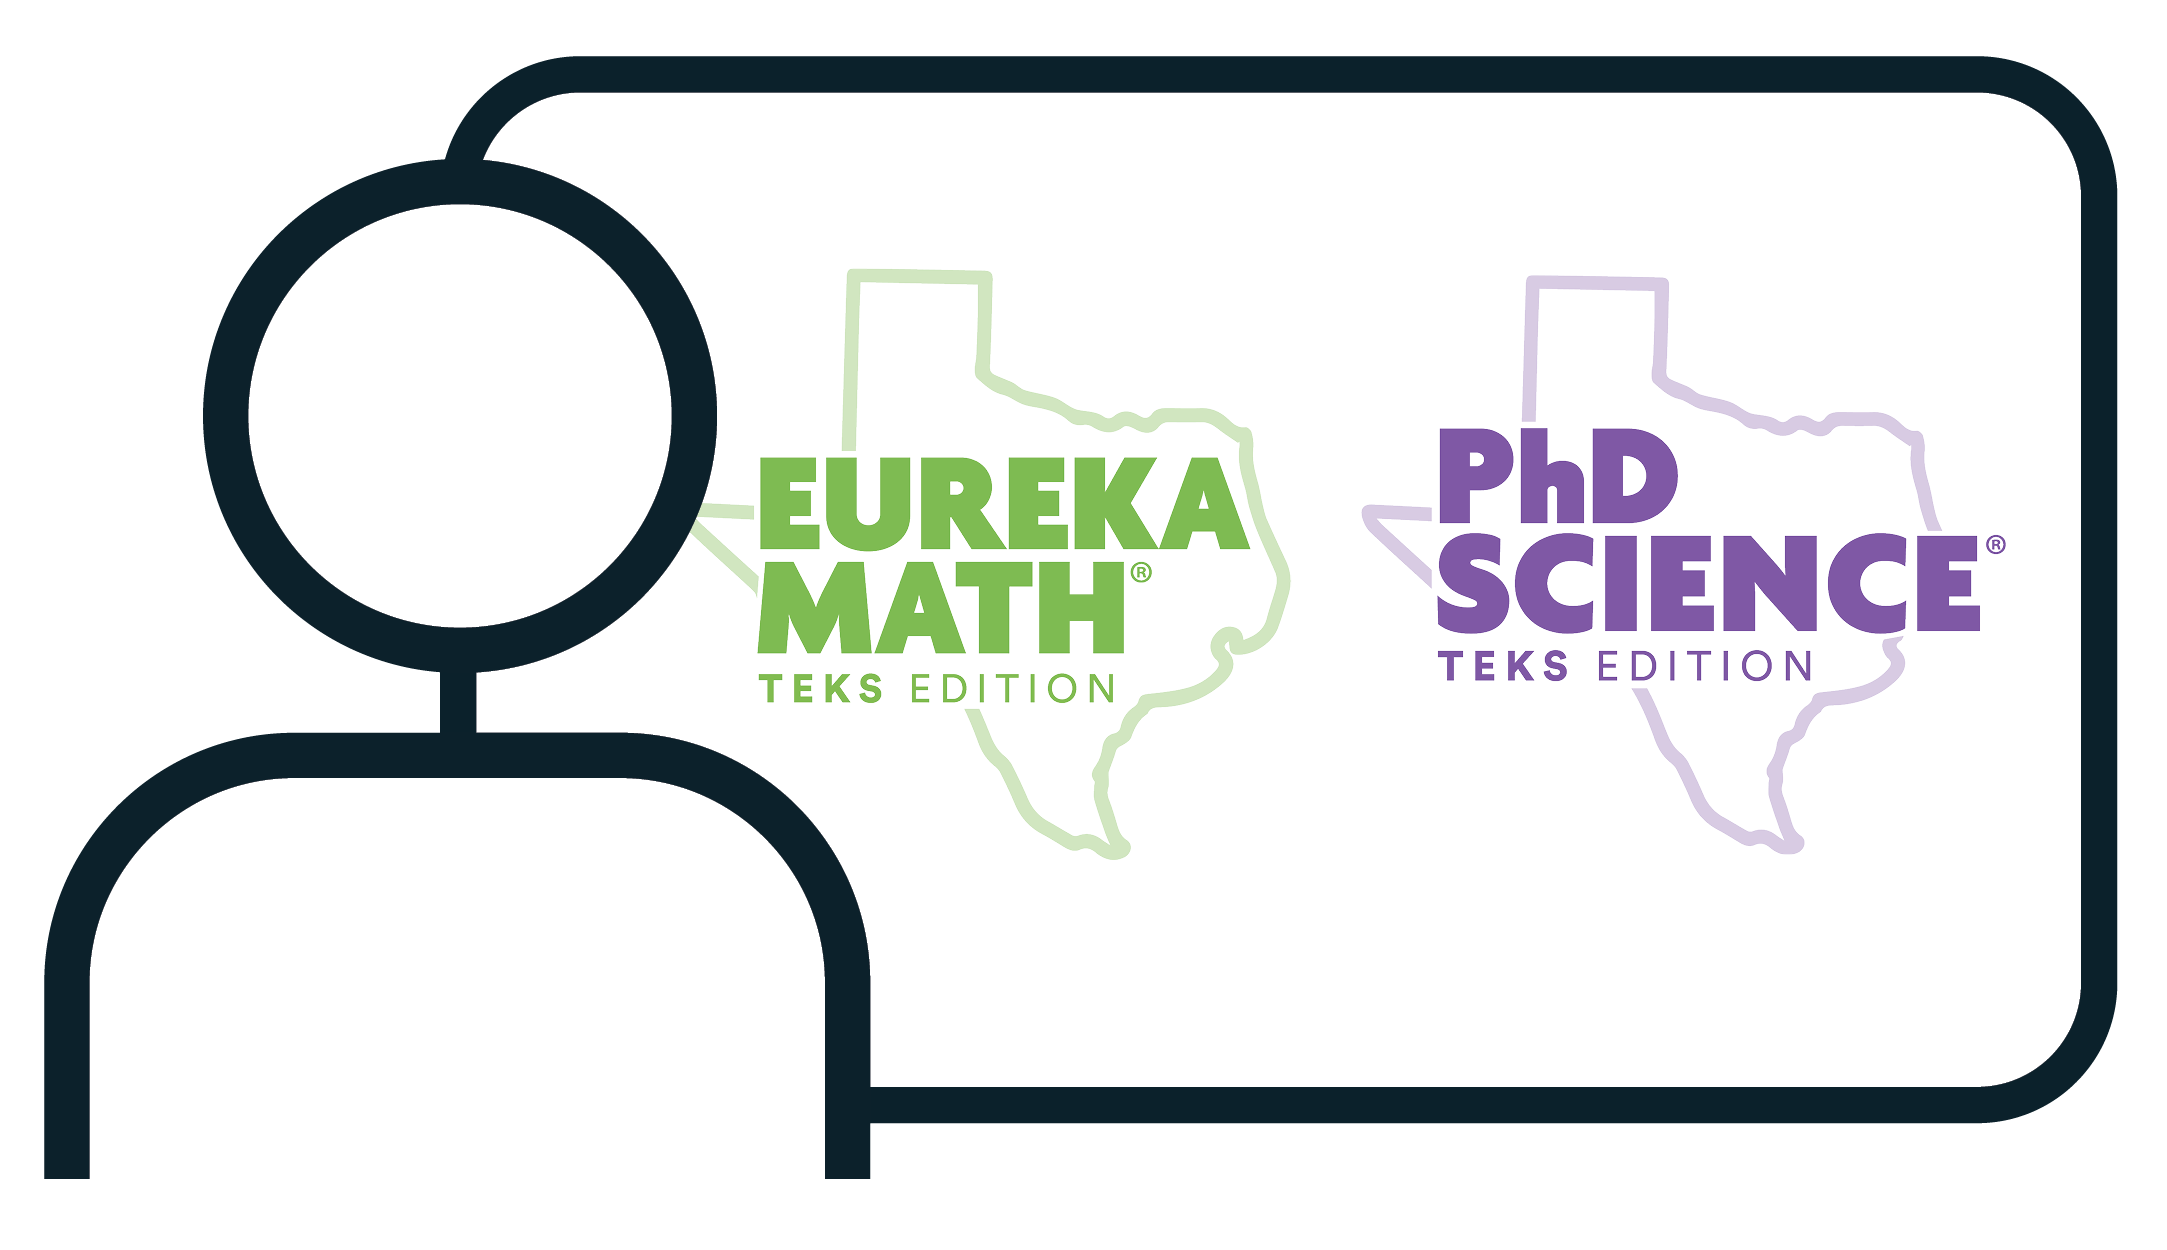 Eureka Math and PhD Science for Texas